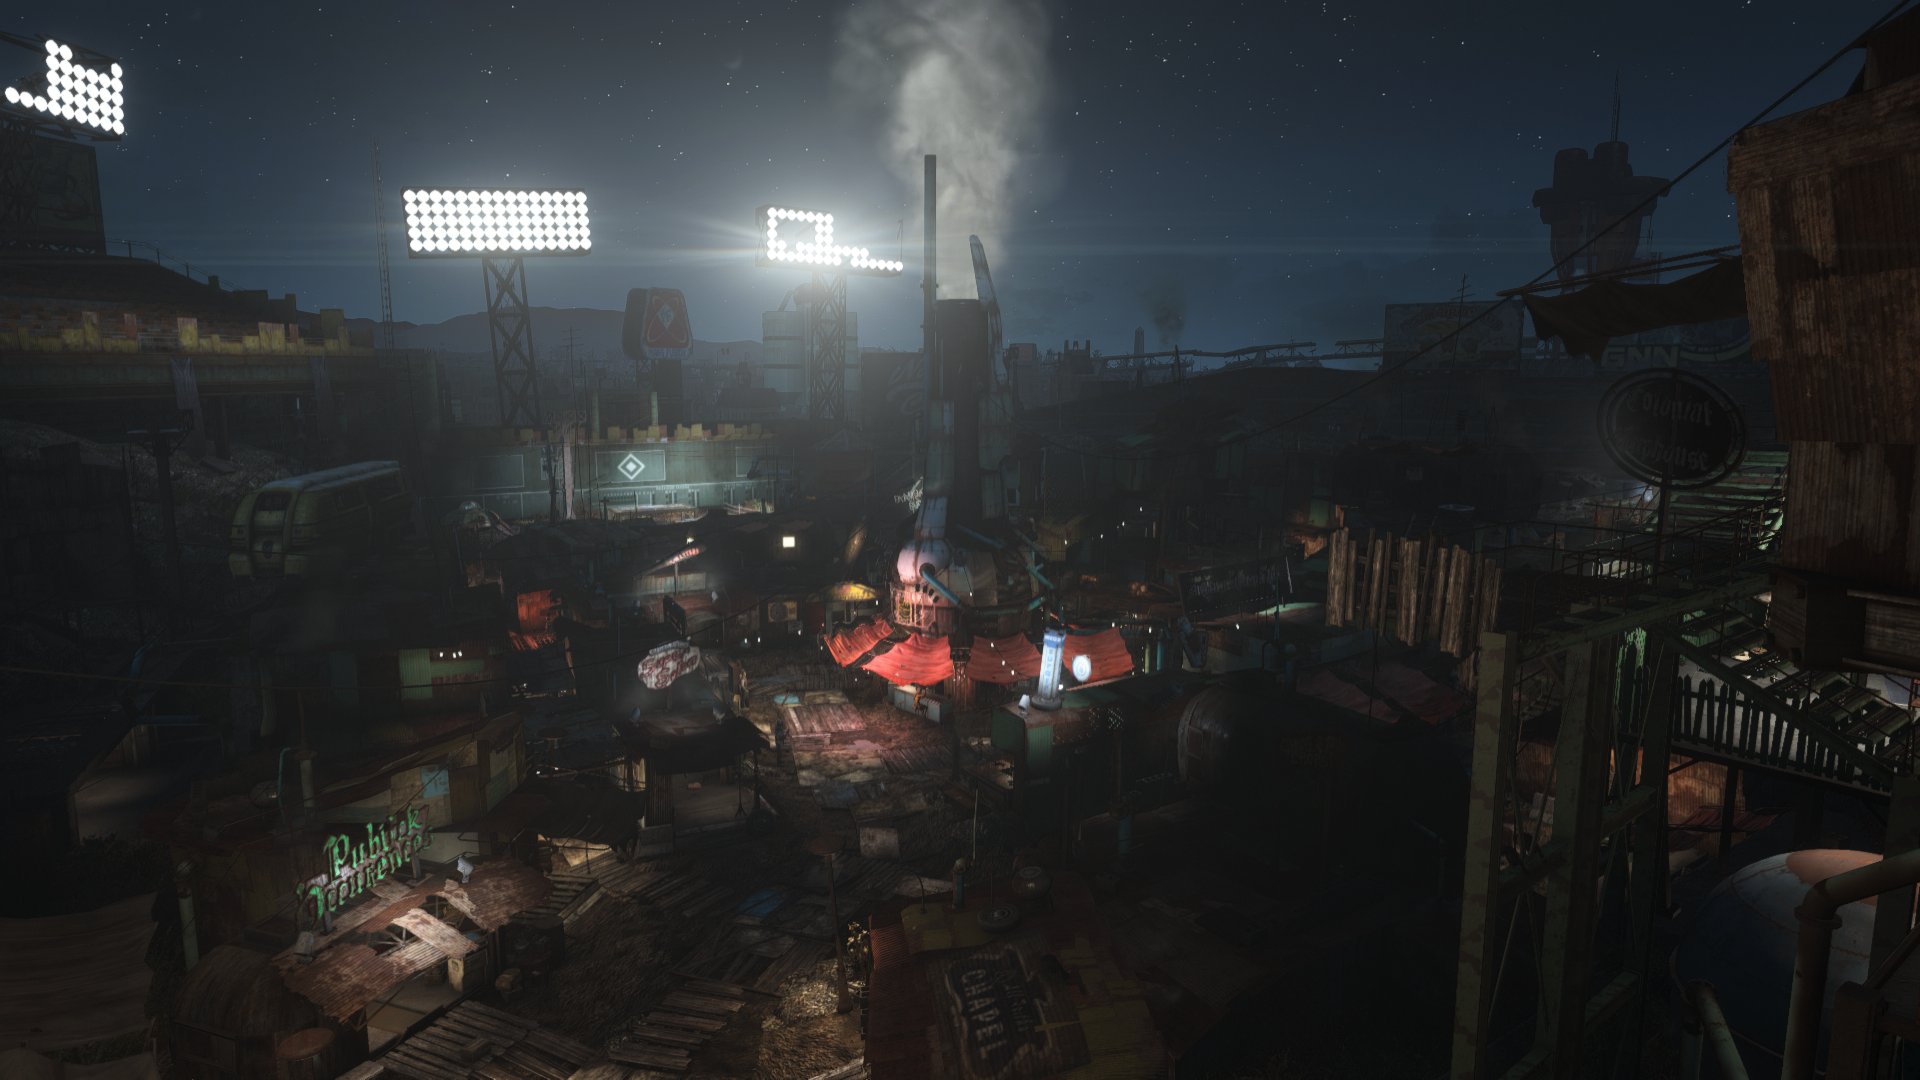 Diamond City at night fo4 1920x1080